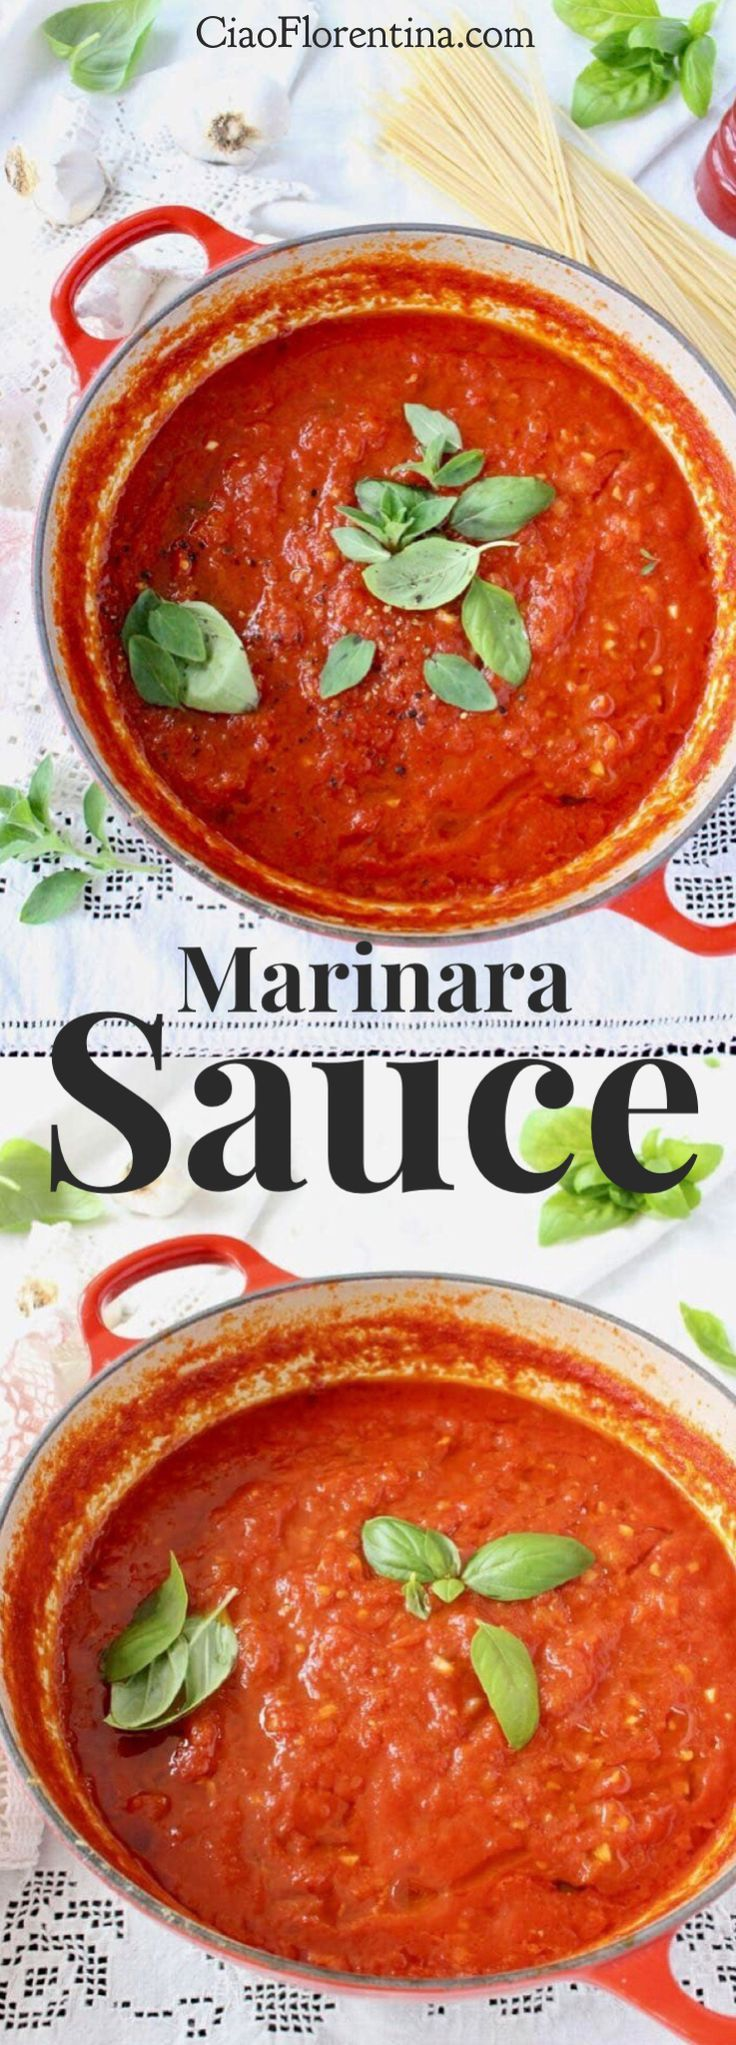 The Best Marinara Sauce Recipe, authentic Italian made with San Marzano tomatoes, garlic and basil! Easy, chunky, creamy and hearty, this is the only recipe you'll need   http://CiaoFlorentina.com @CiaoFlorentina